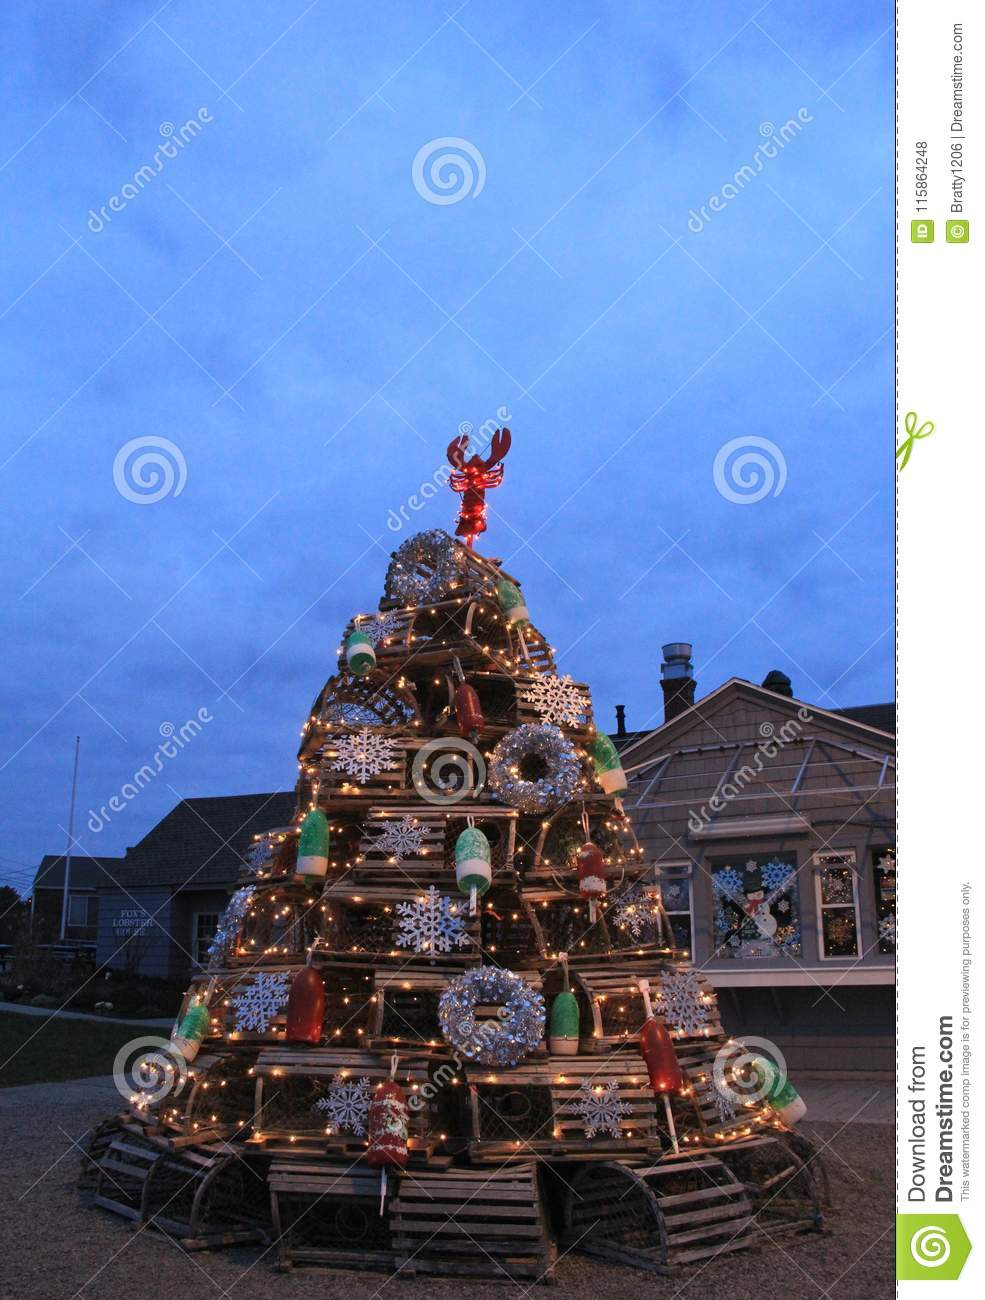 Imaginative Christmas Tree Made From Lobster Traps And Beach Themed ...